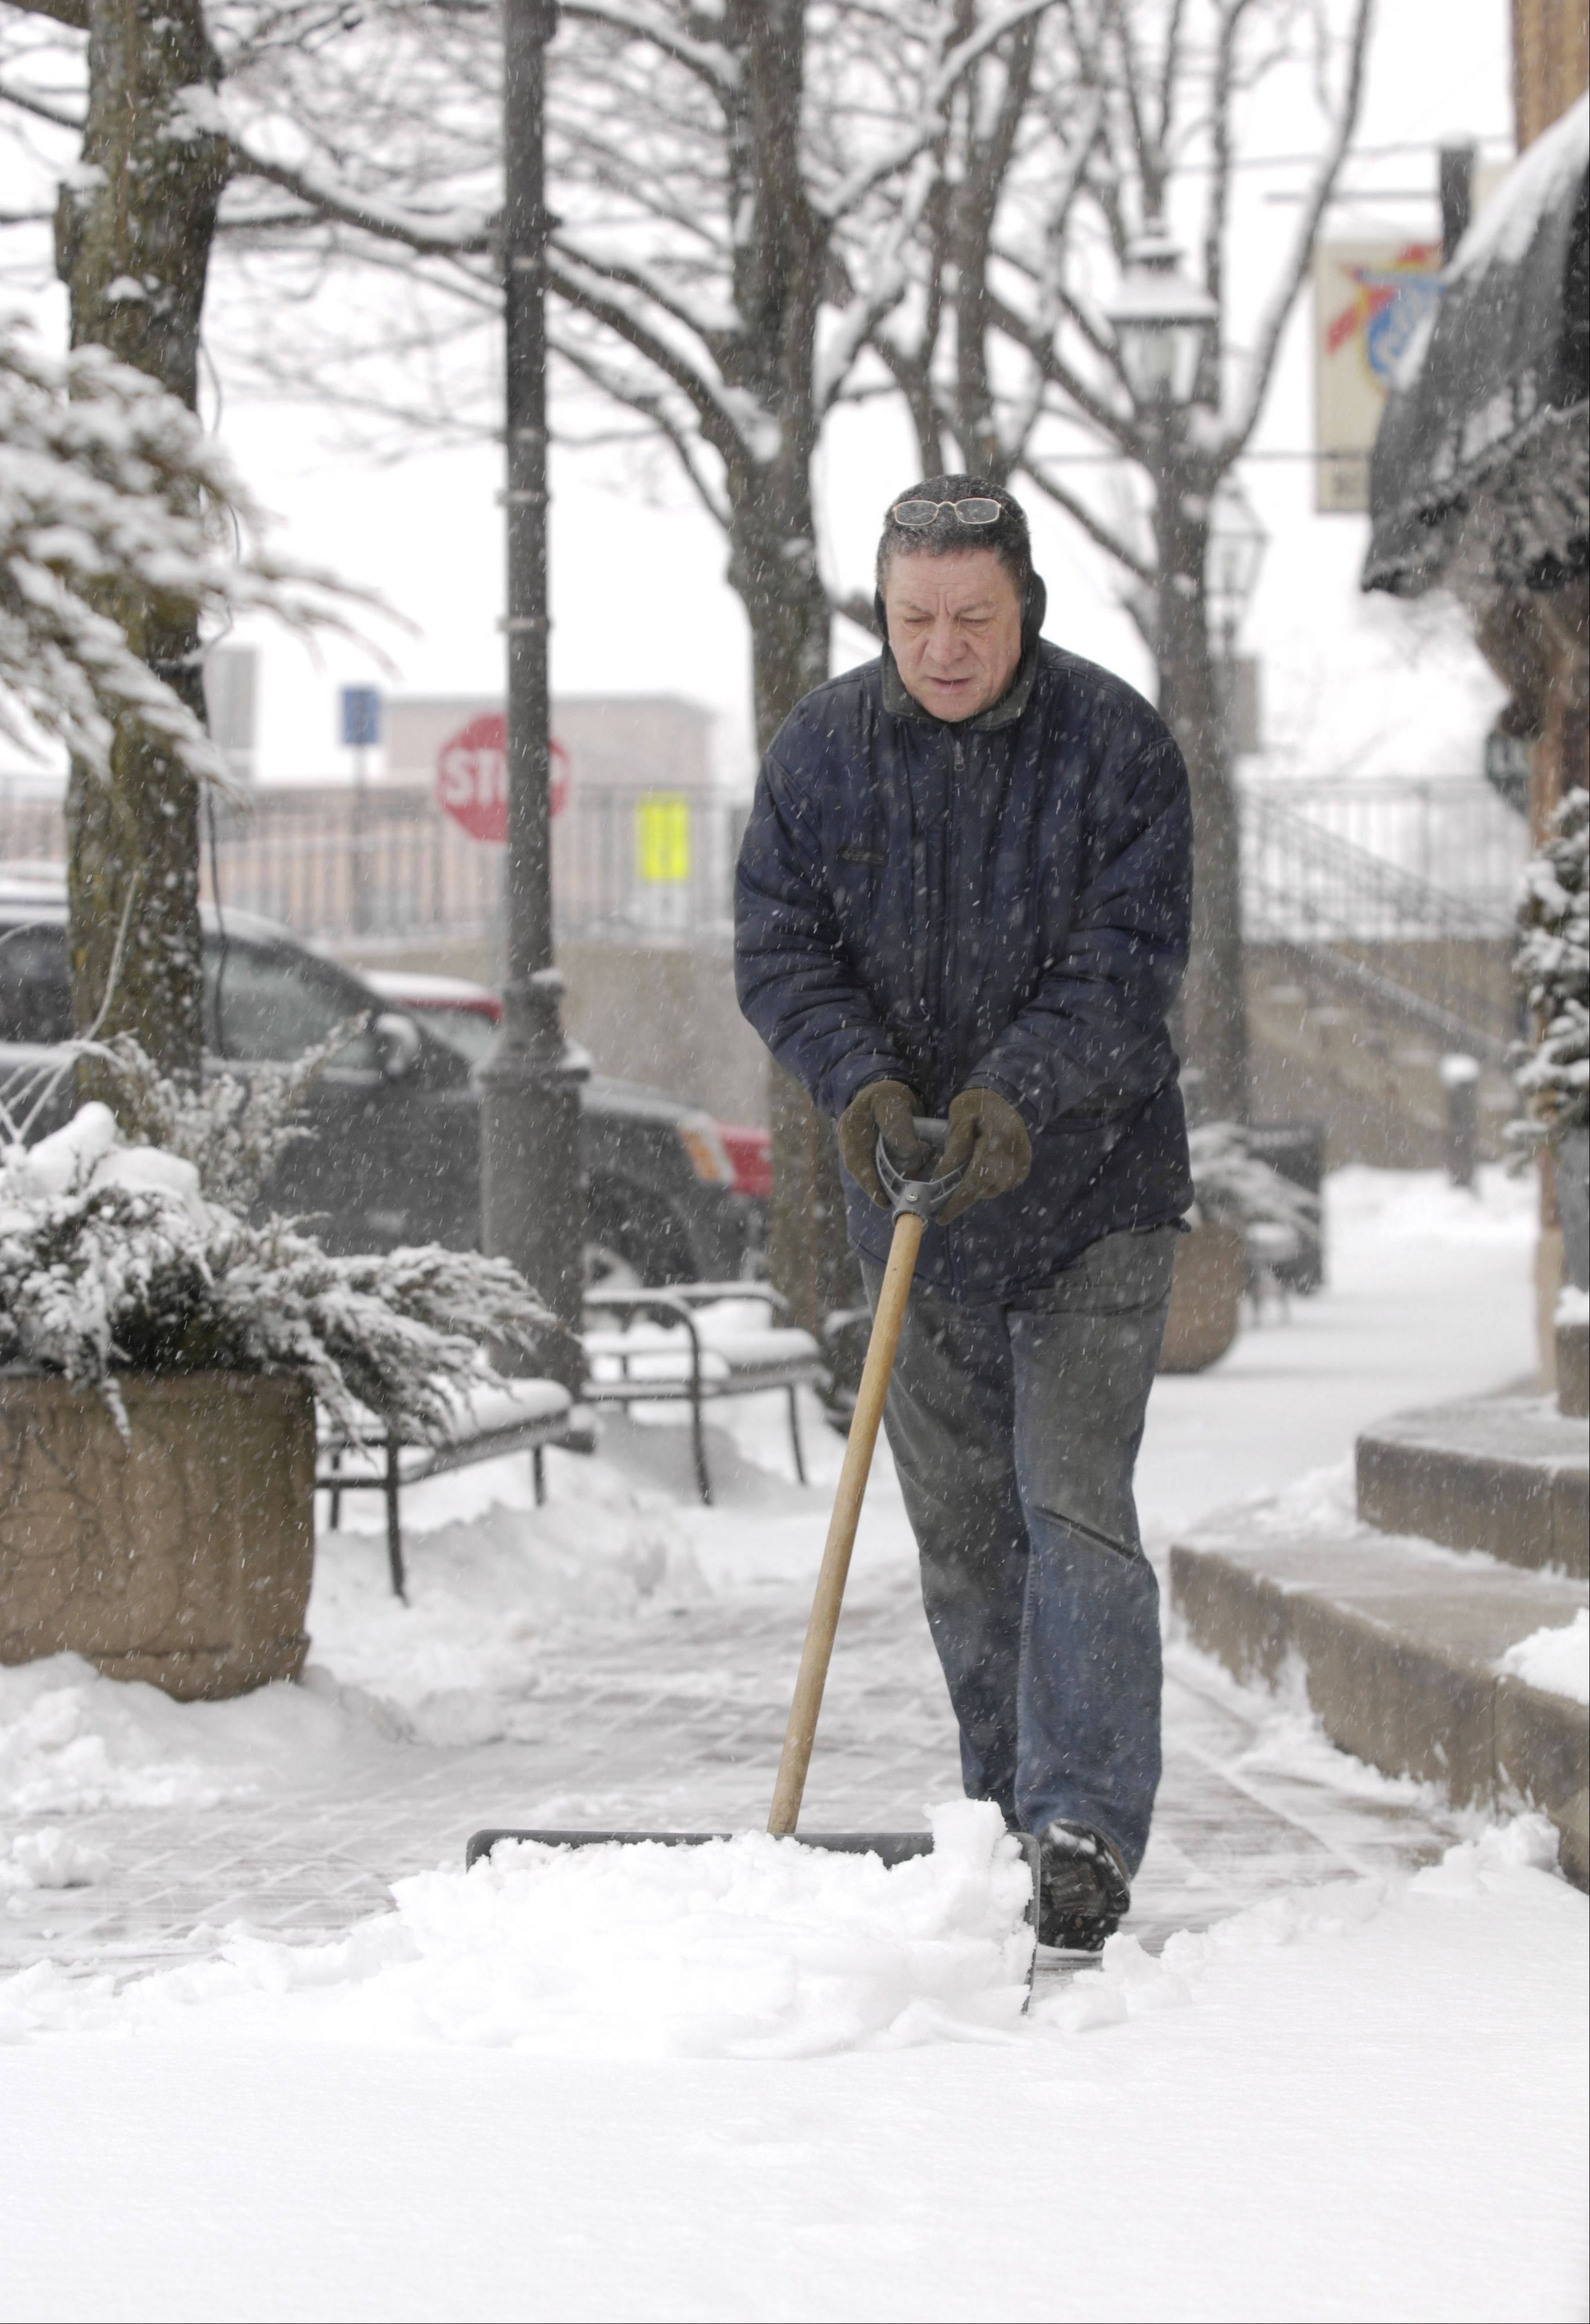 Jim Basile clears the snow off the sidewalk in downtown Lombard Tuesday.